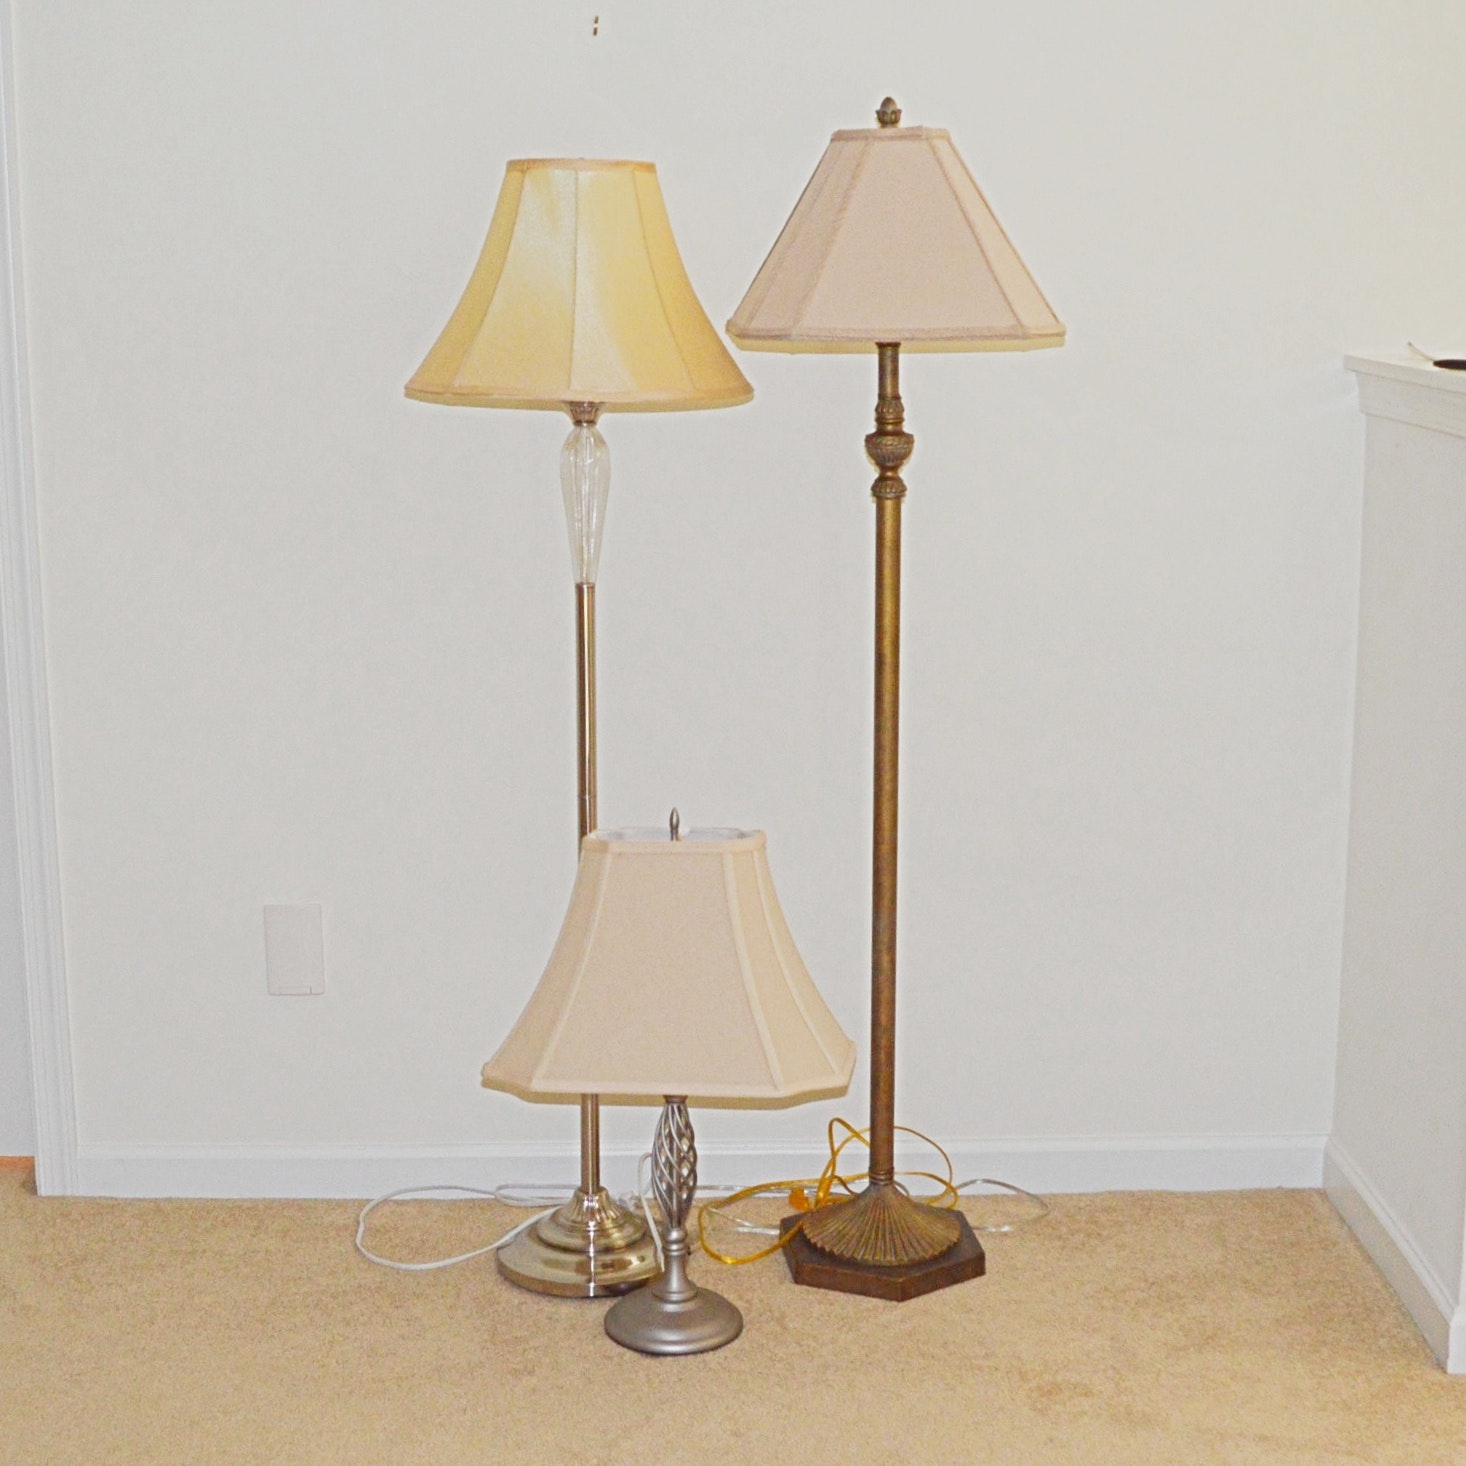 Grouping of Lamps